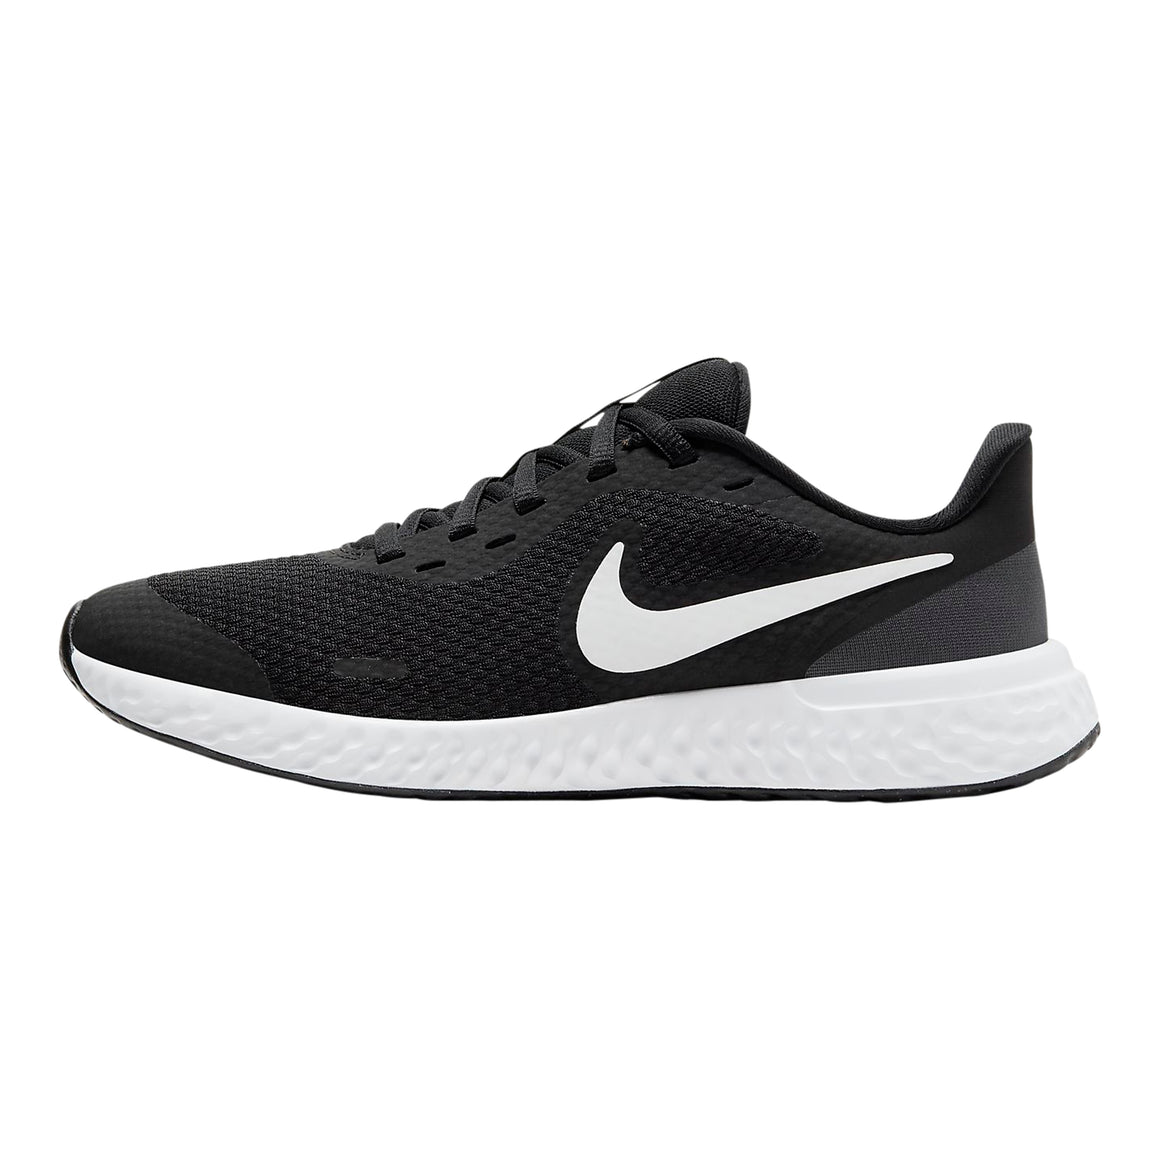 Revolution 5 Running Shoes for Older Kids in Black/White